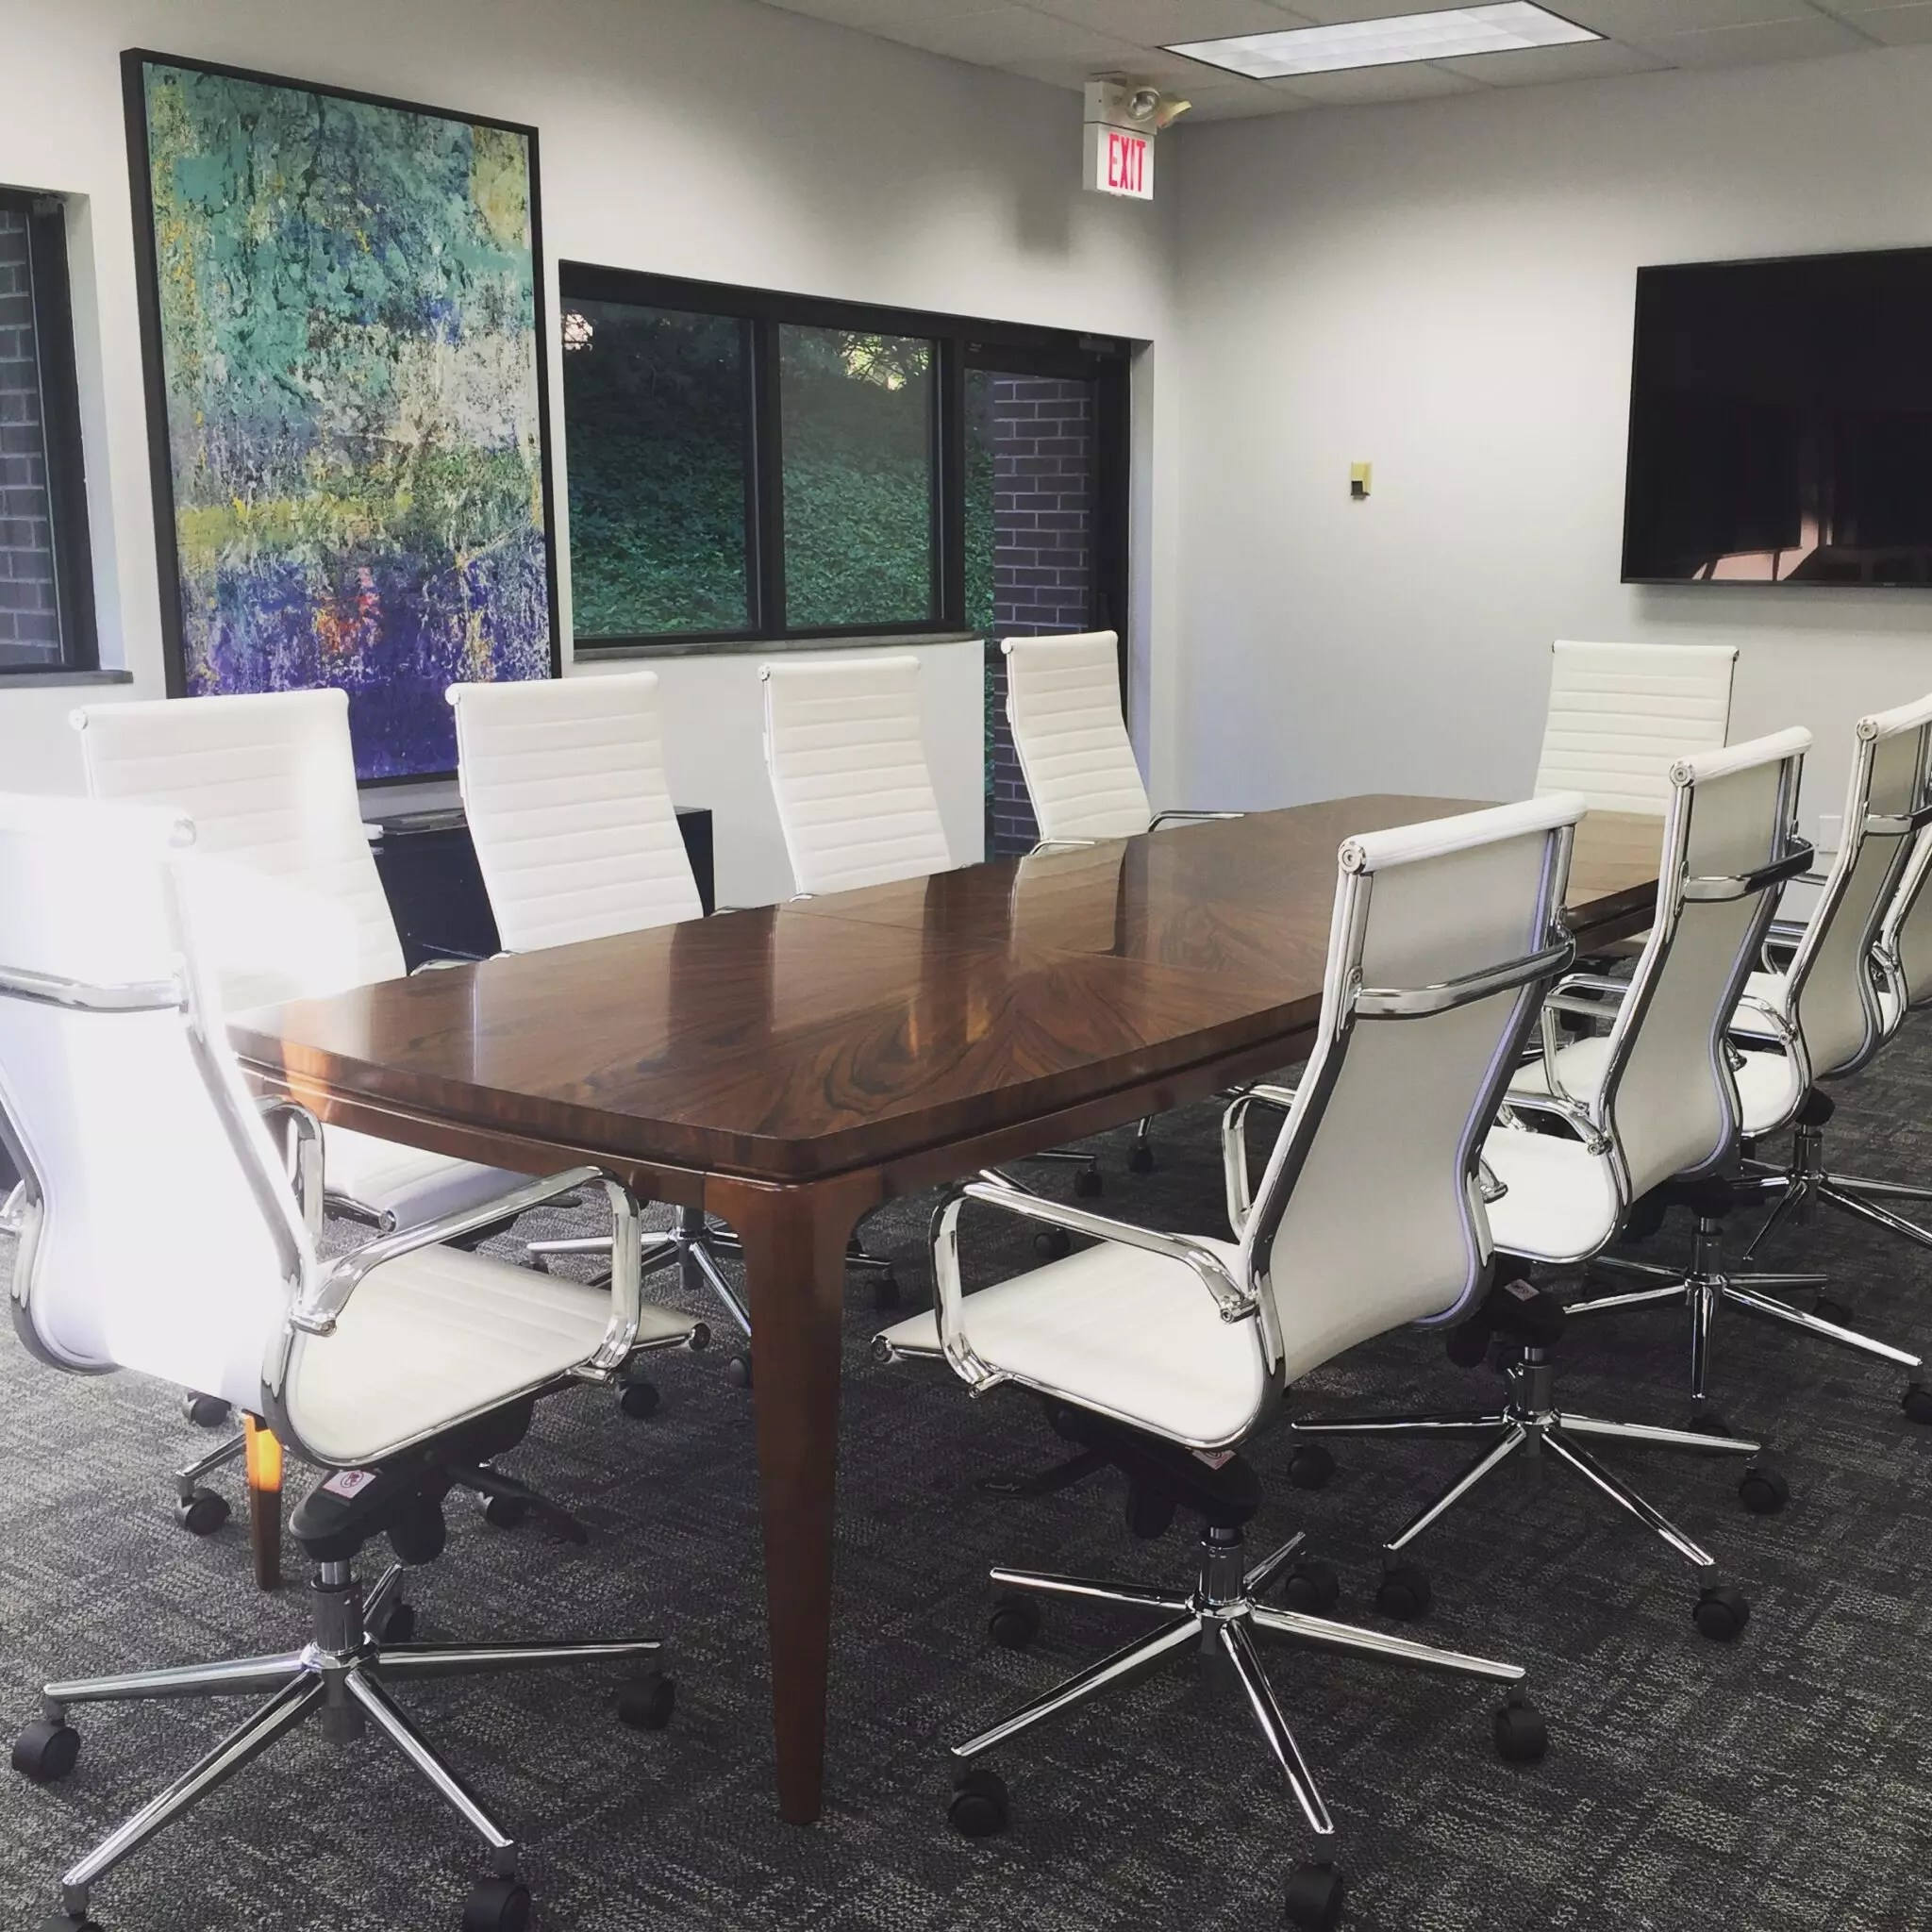 Commercial Design with Conference Table